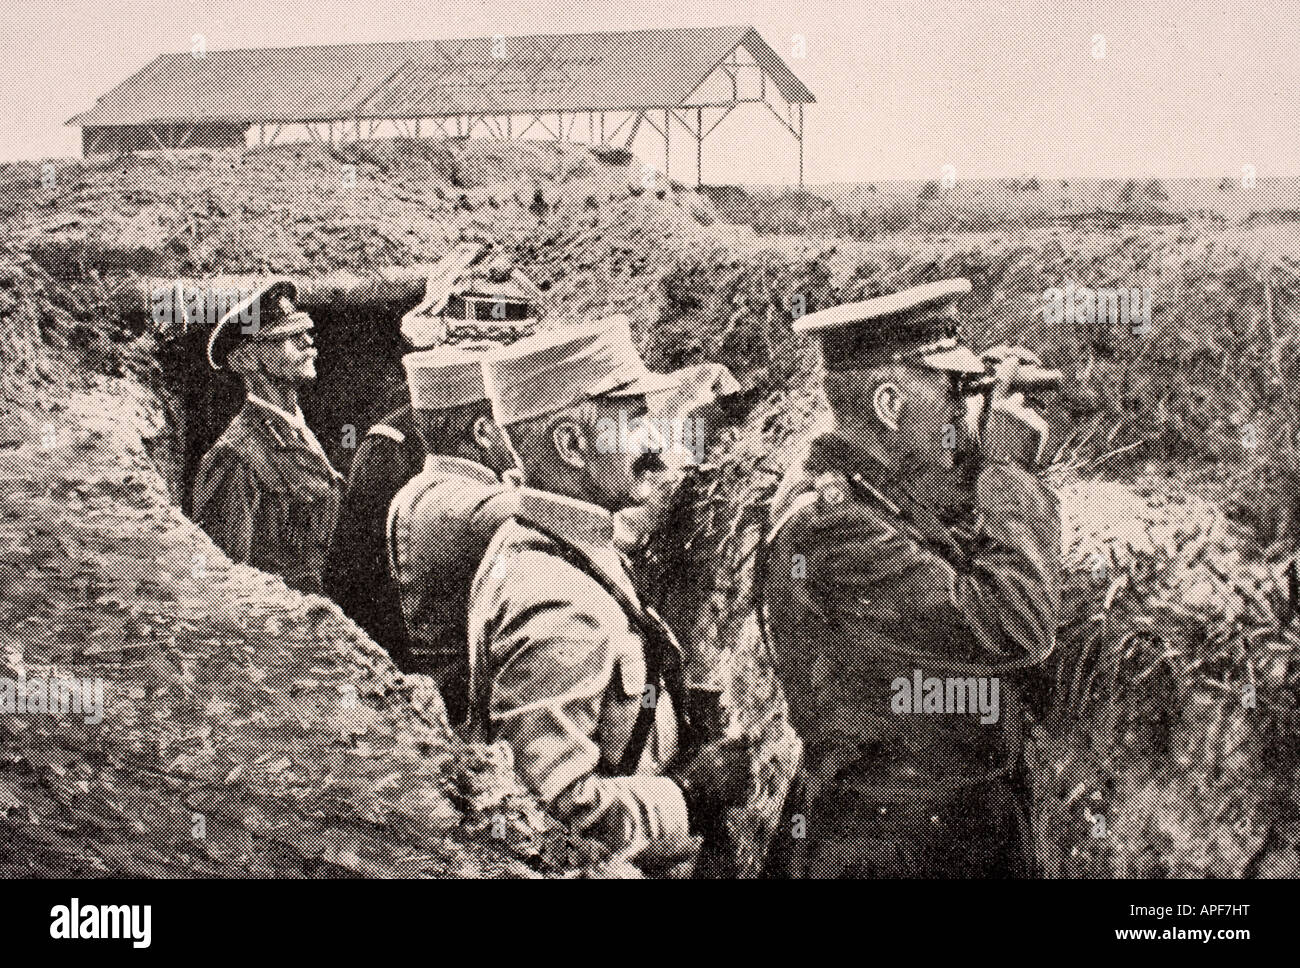 Lord Kitchener with binoculars with General Joffre in trench on Western Front August 1915 - Stock Image